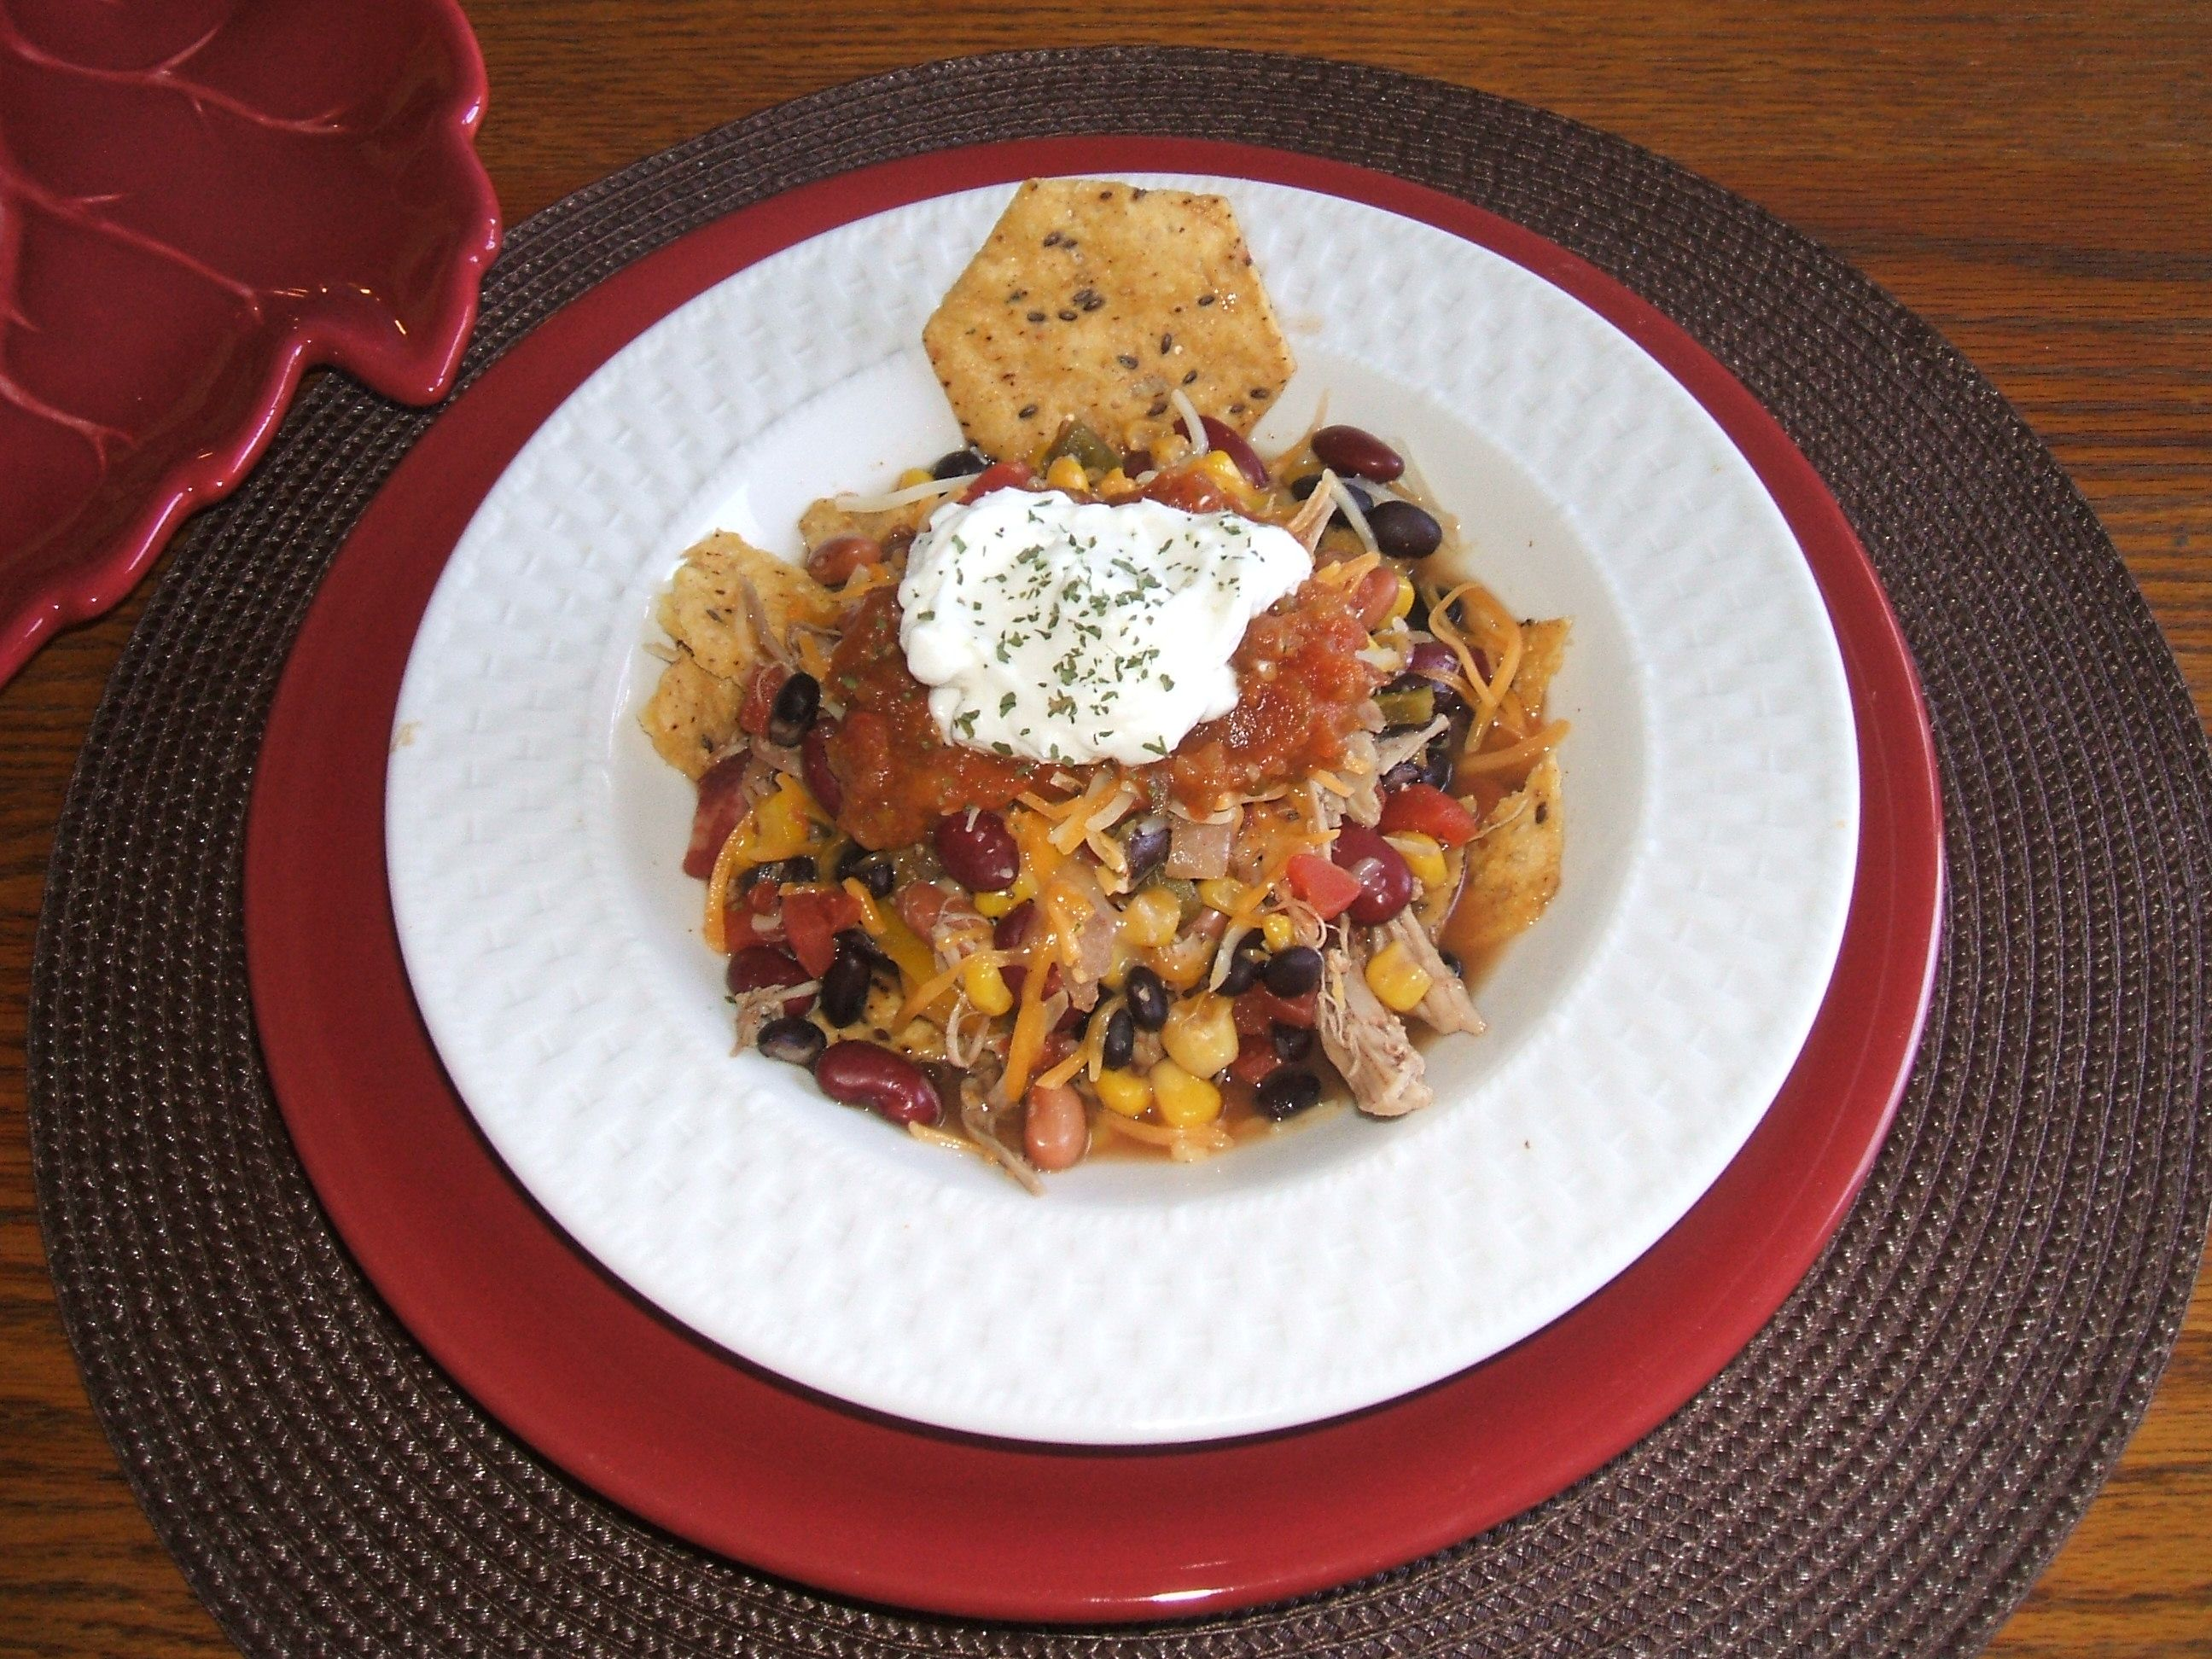 Crockpot Turkey Chili... I made this with leftover turkey from Allrecipes.com and added corn, onion and peppers.  Served over chips and topped w/ cheese, pumpkin salsa, light sour cream and cilantro.  Best chili ever!!!  And it looks great too.